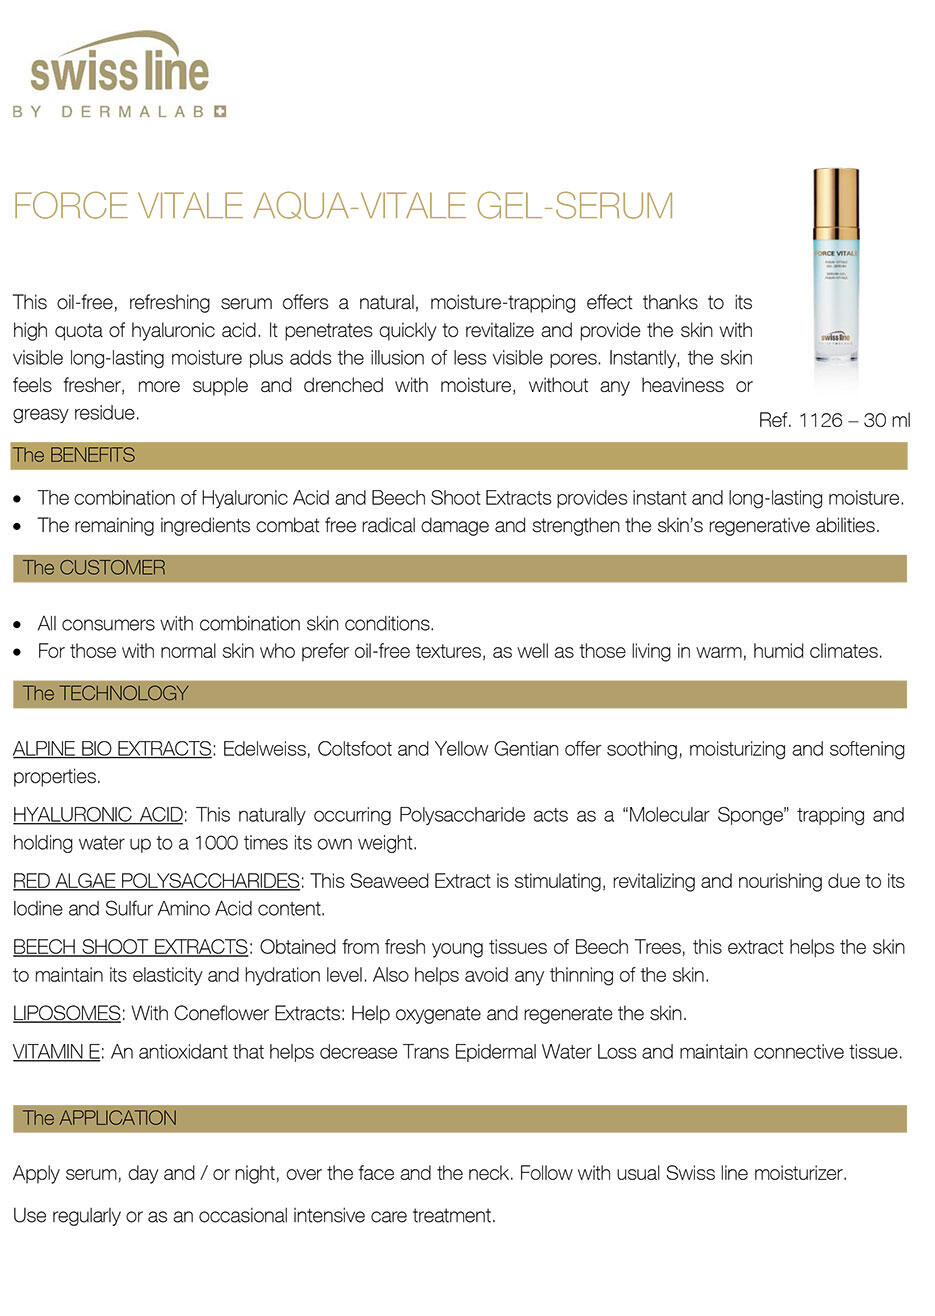 SWISS-LINE-FORCE-VITALE-AQUA-VITALE-GEL-SERUM-fact-sheet